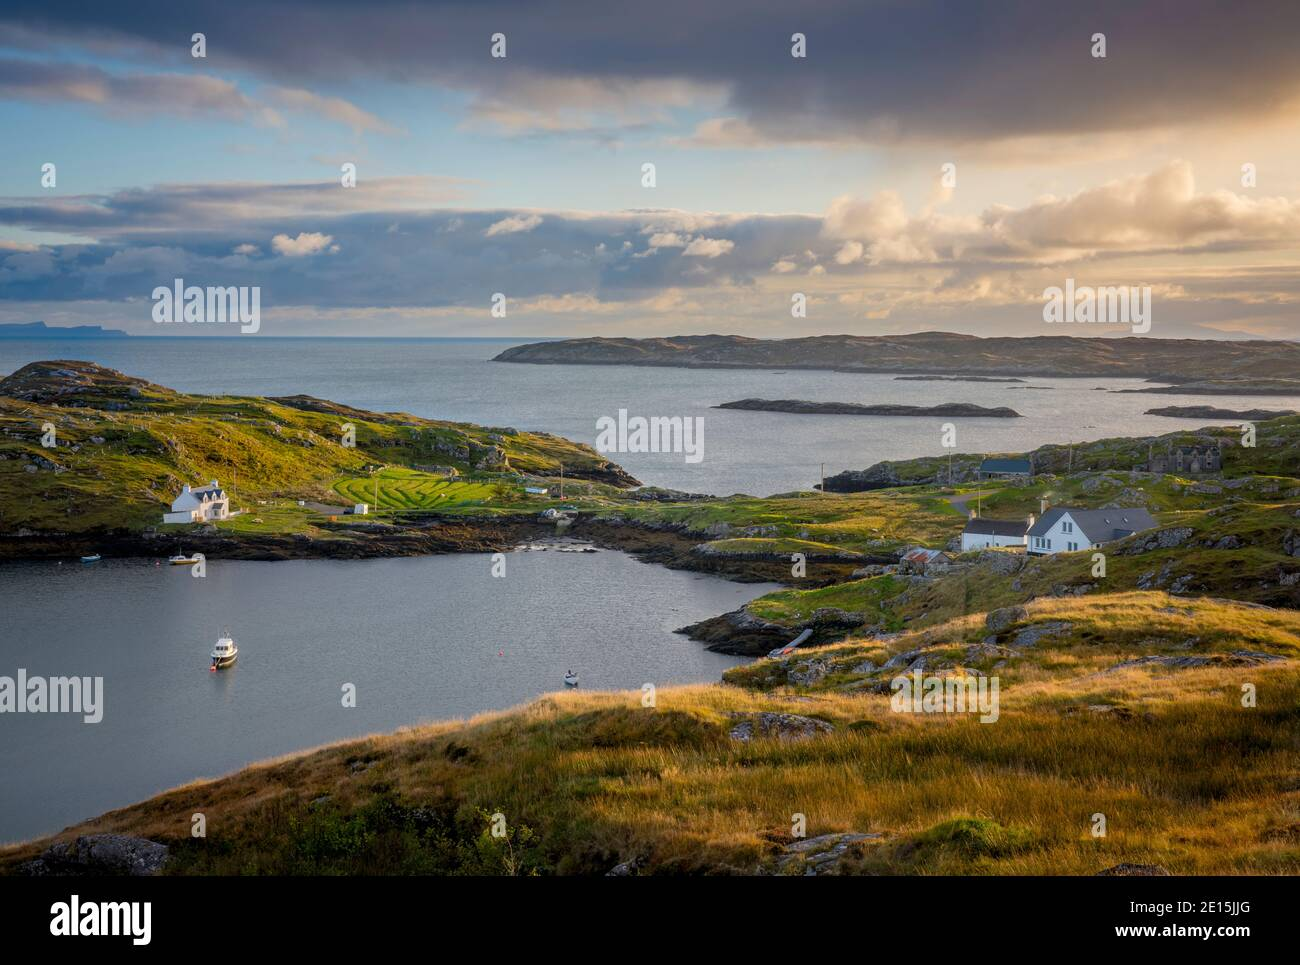 South Harris, Isle of Lewis and Harris, Scotland: Clearing evening storm clouds over an isolated coastal village Stock Photo